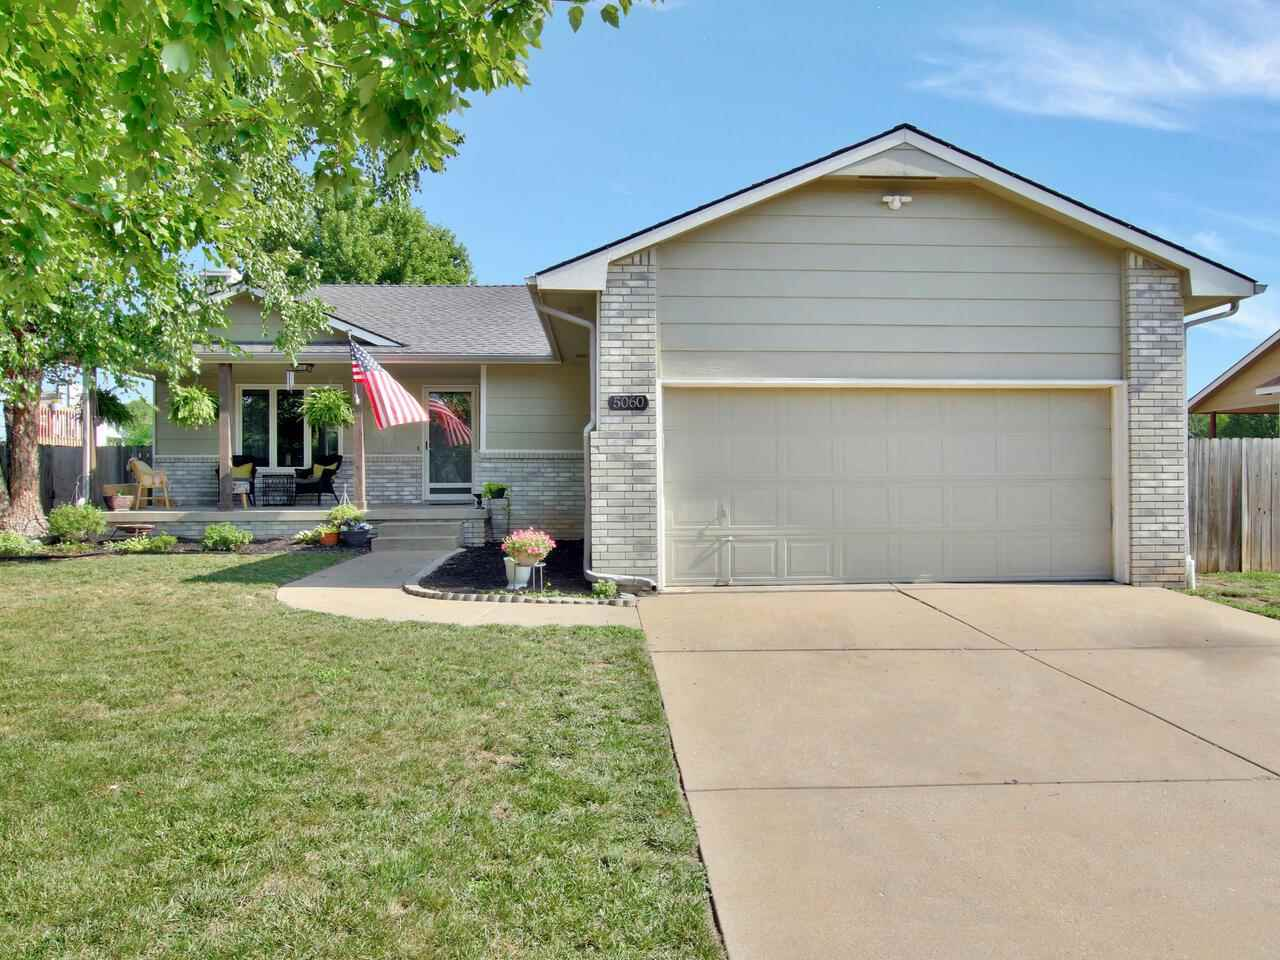 5060 E Willow Point Rd, Bel Aire, KS, 67220